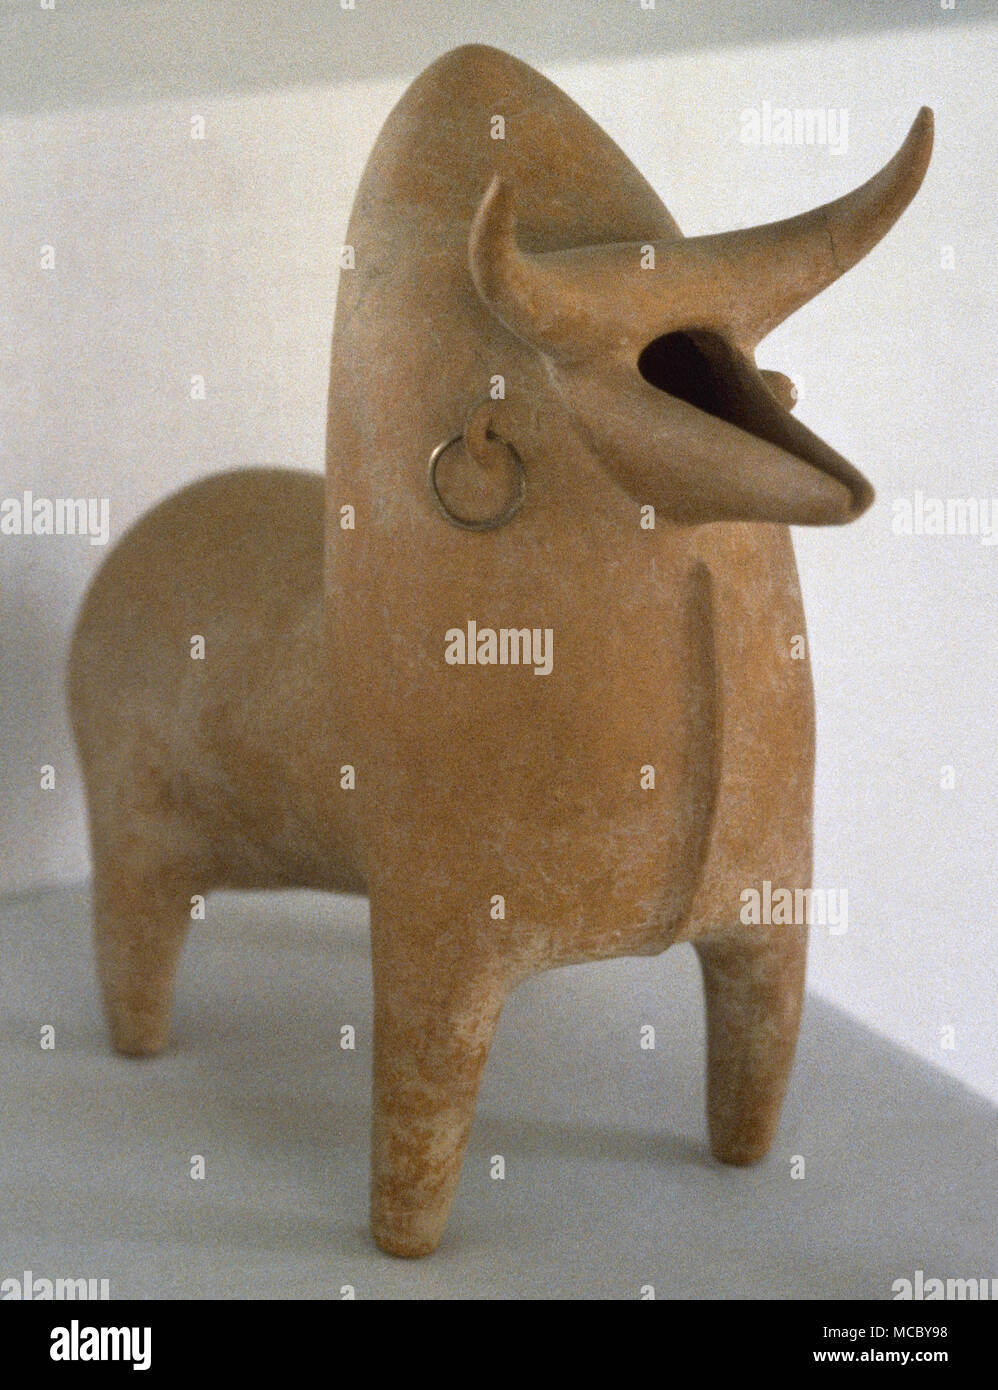 The Marlik Culture (Indo-European population). Iron Age. Neo-Elamite dynasties. Humped bull or cow with its original earring decoration intact (oil lamp). From Marlik, late 2nd millennium BC. The National Museum of Iran. Tehran, Islamic Republic of Iran. - Stock Image